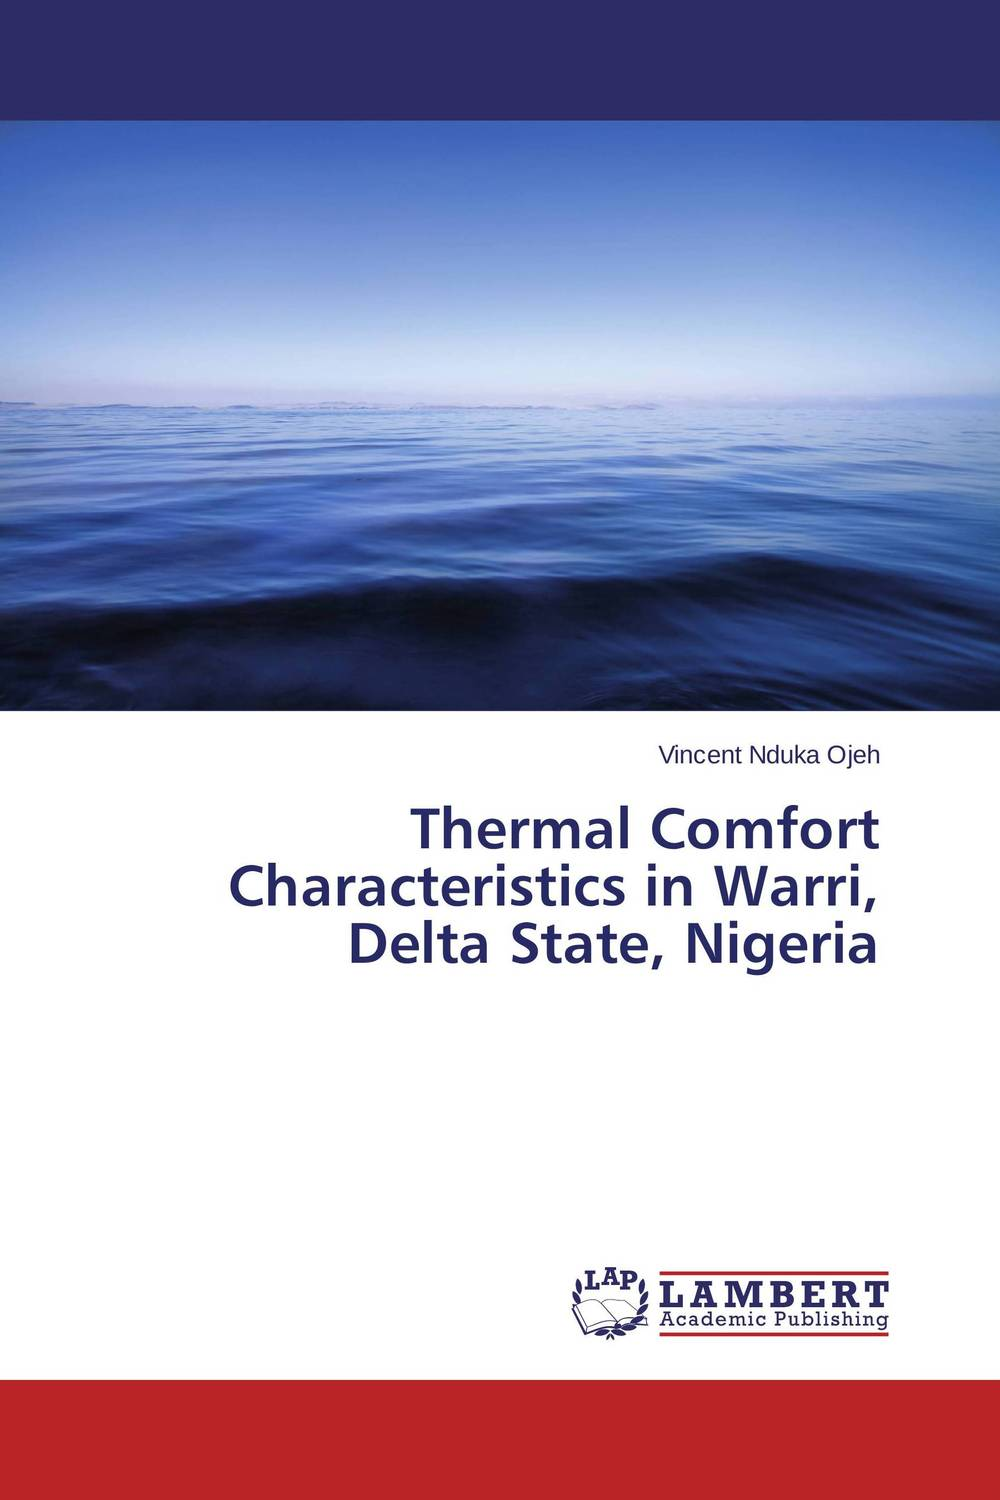 Thermal Comfort Characteristics in Warri, Delta State, Nigeria climatology and biogeography